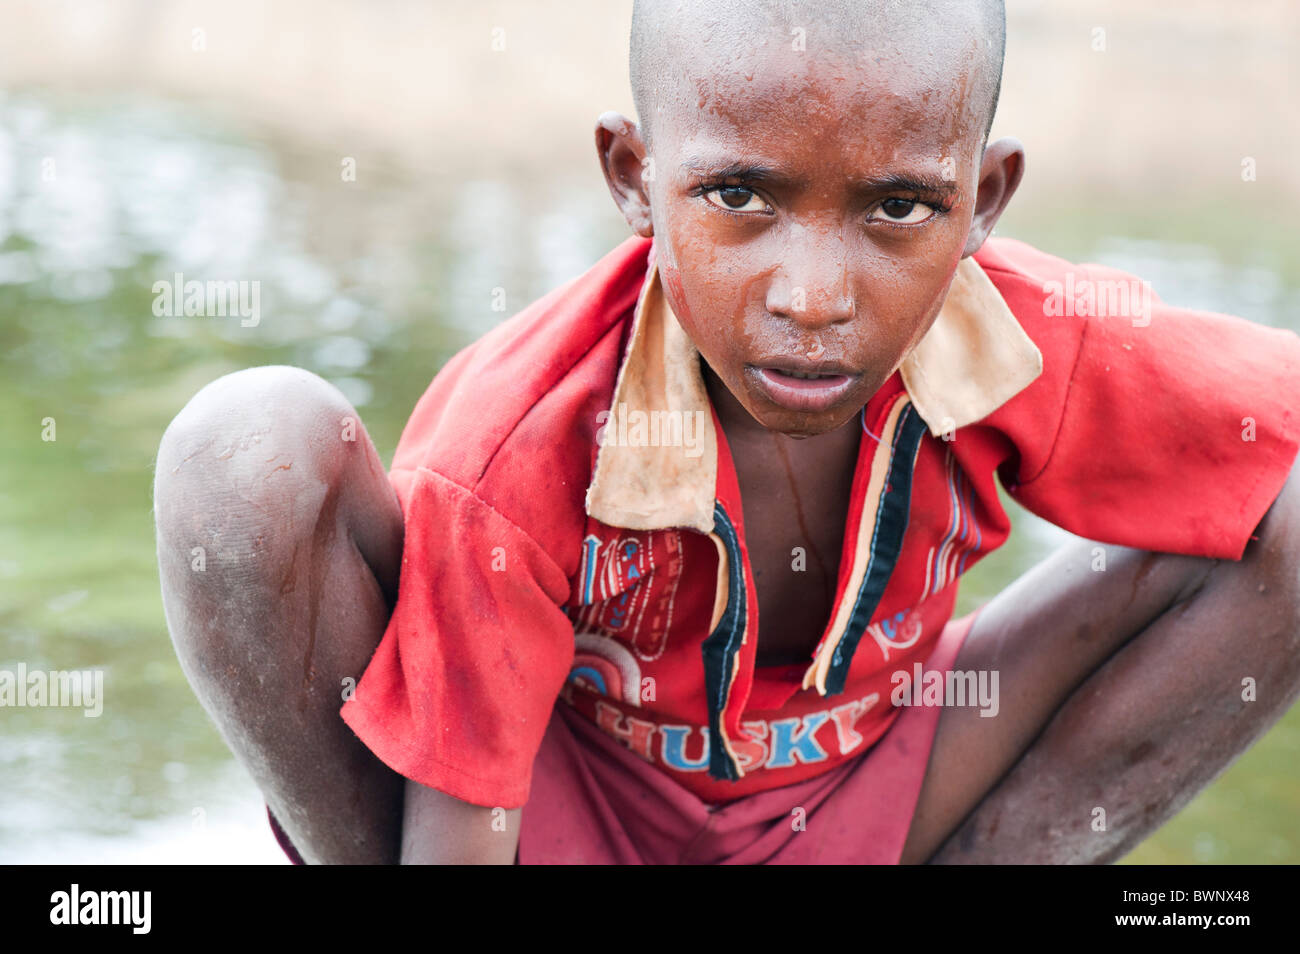 Indian street boy washing himself and drinking water in a river in the Indian countryside. Andhra Pradesh, India - Stock Image